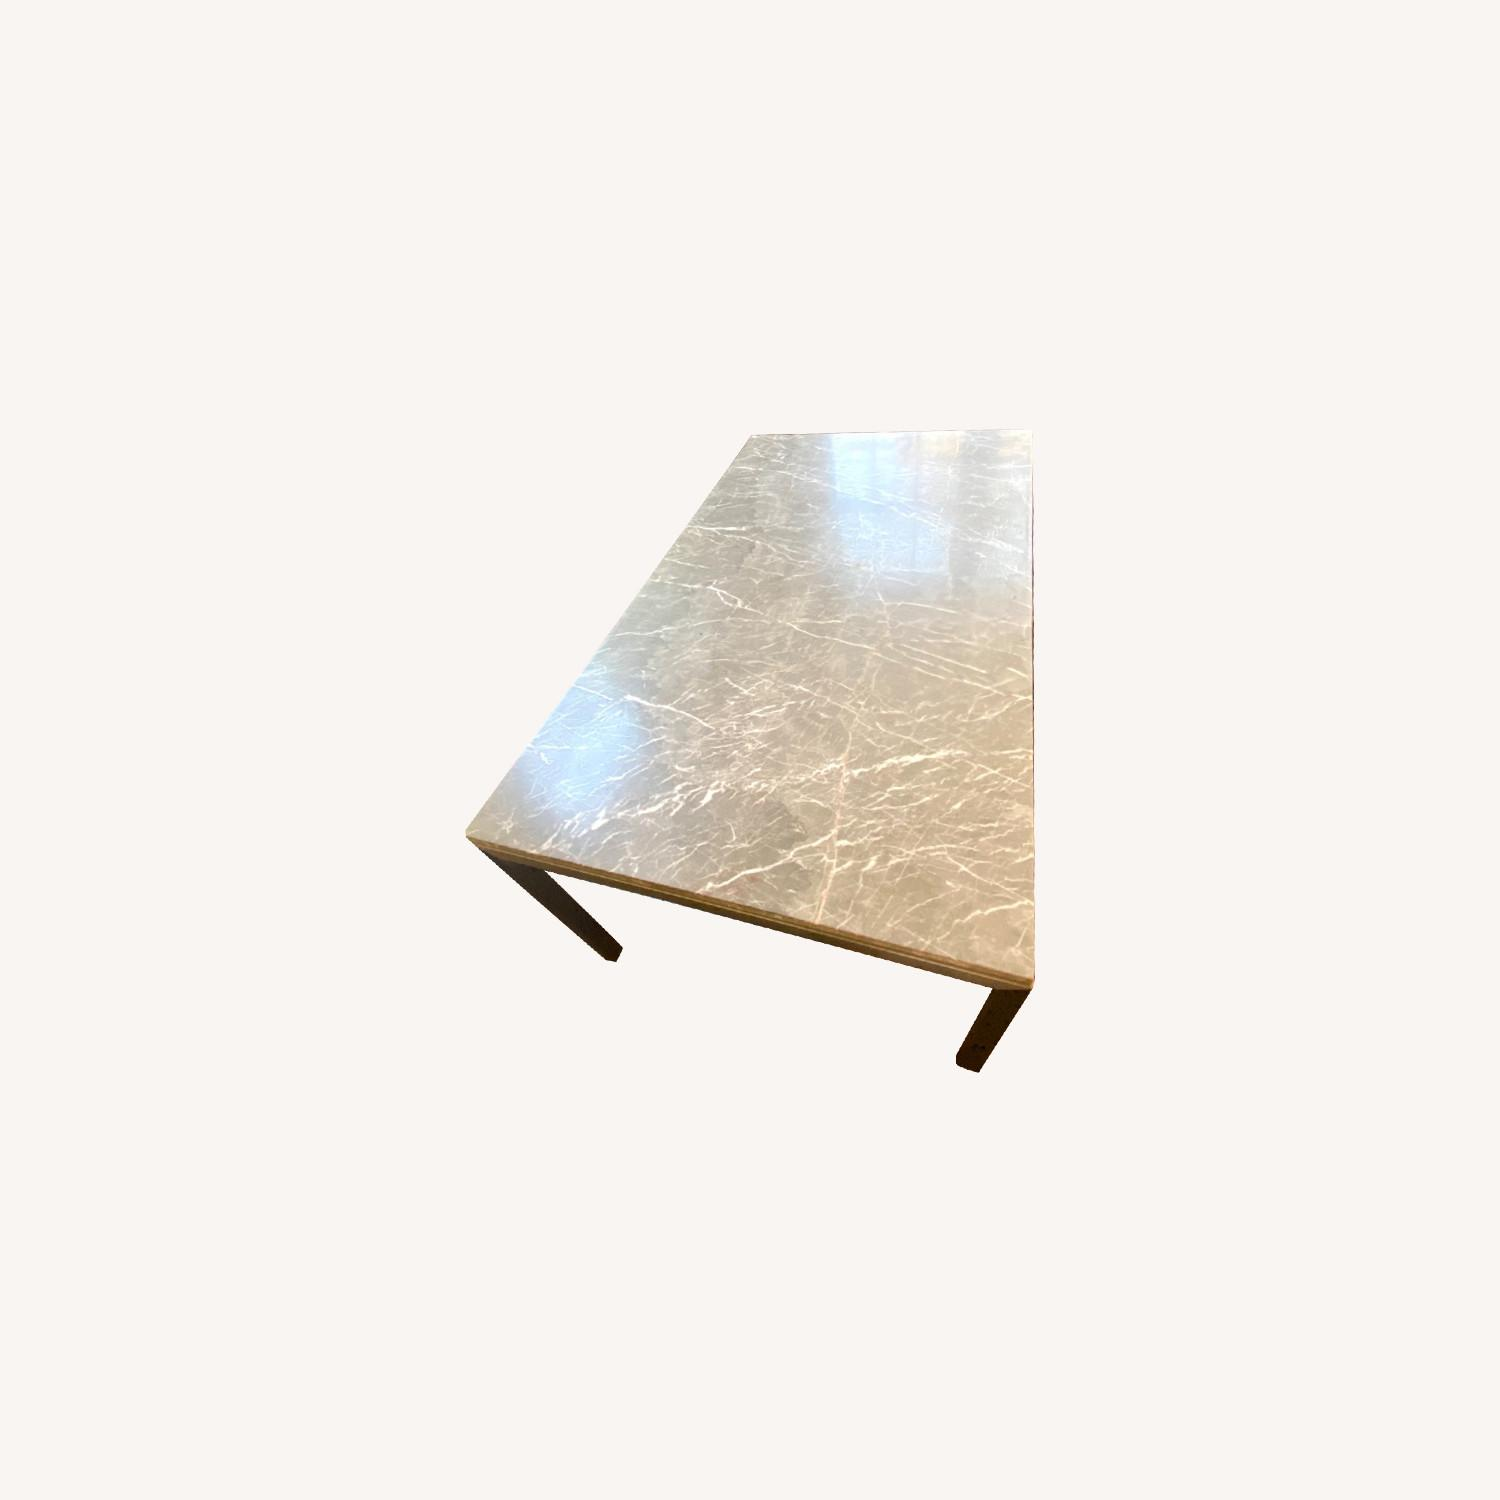 Crate and barrel grey marble dining table - image-0